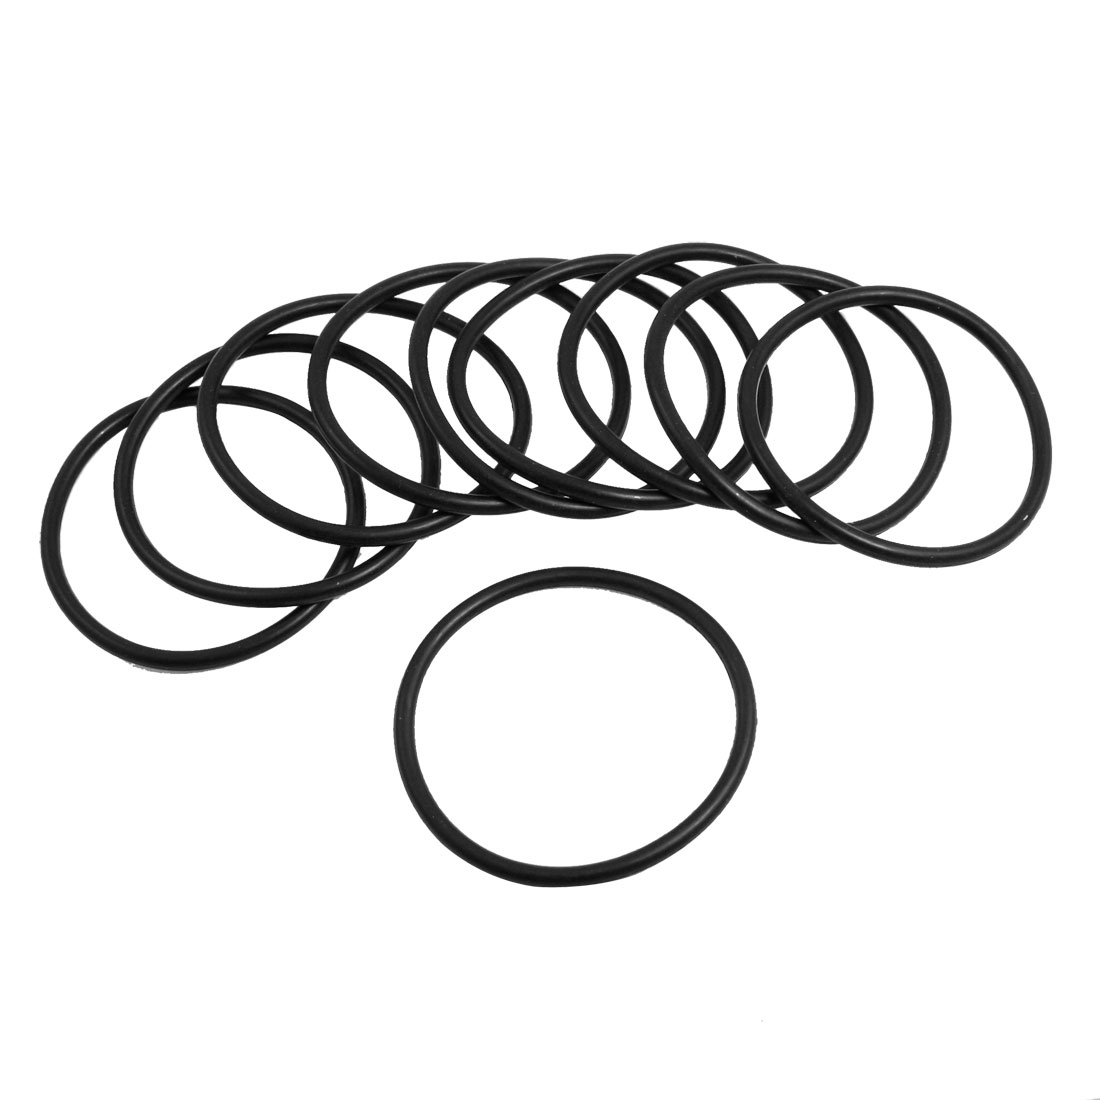 10 Pcs Oil Seal O Rings Black Nitrile Rubber 68mm OD 4mm Thickness